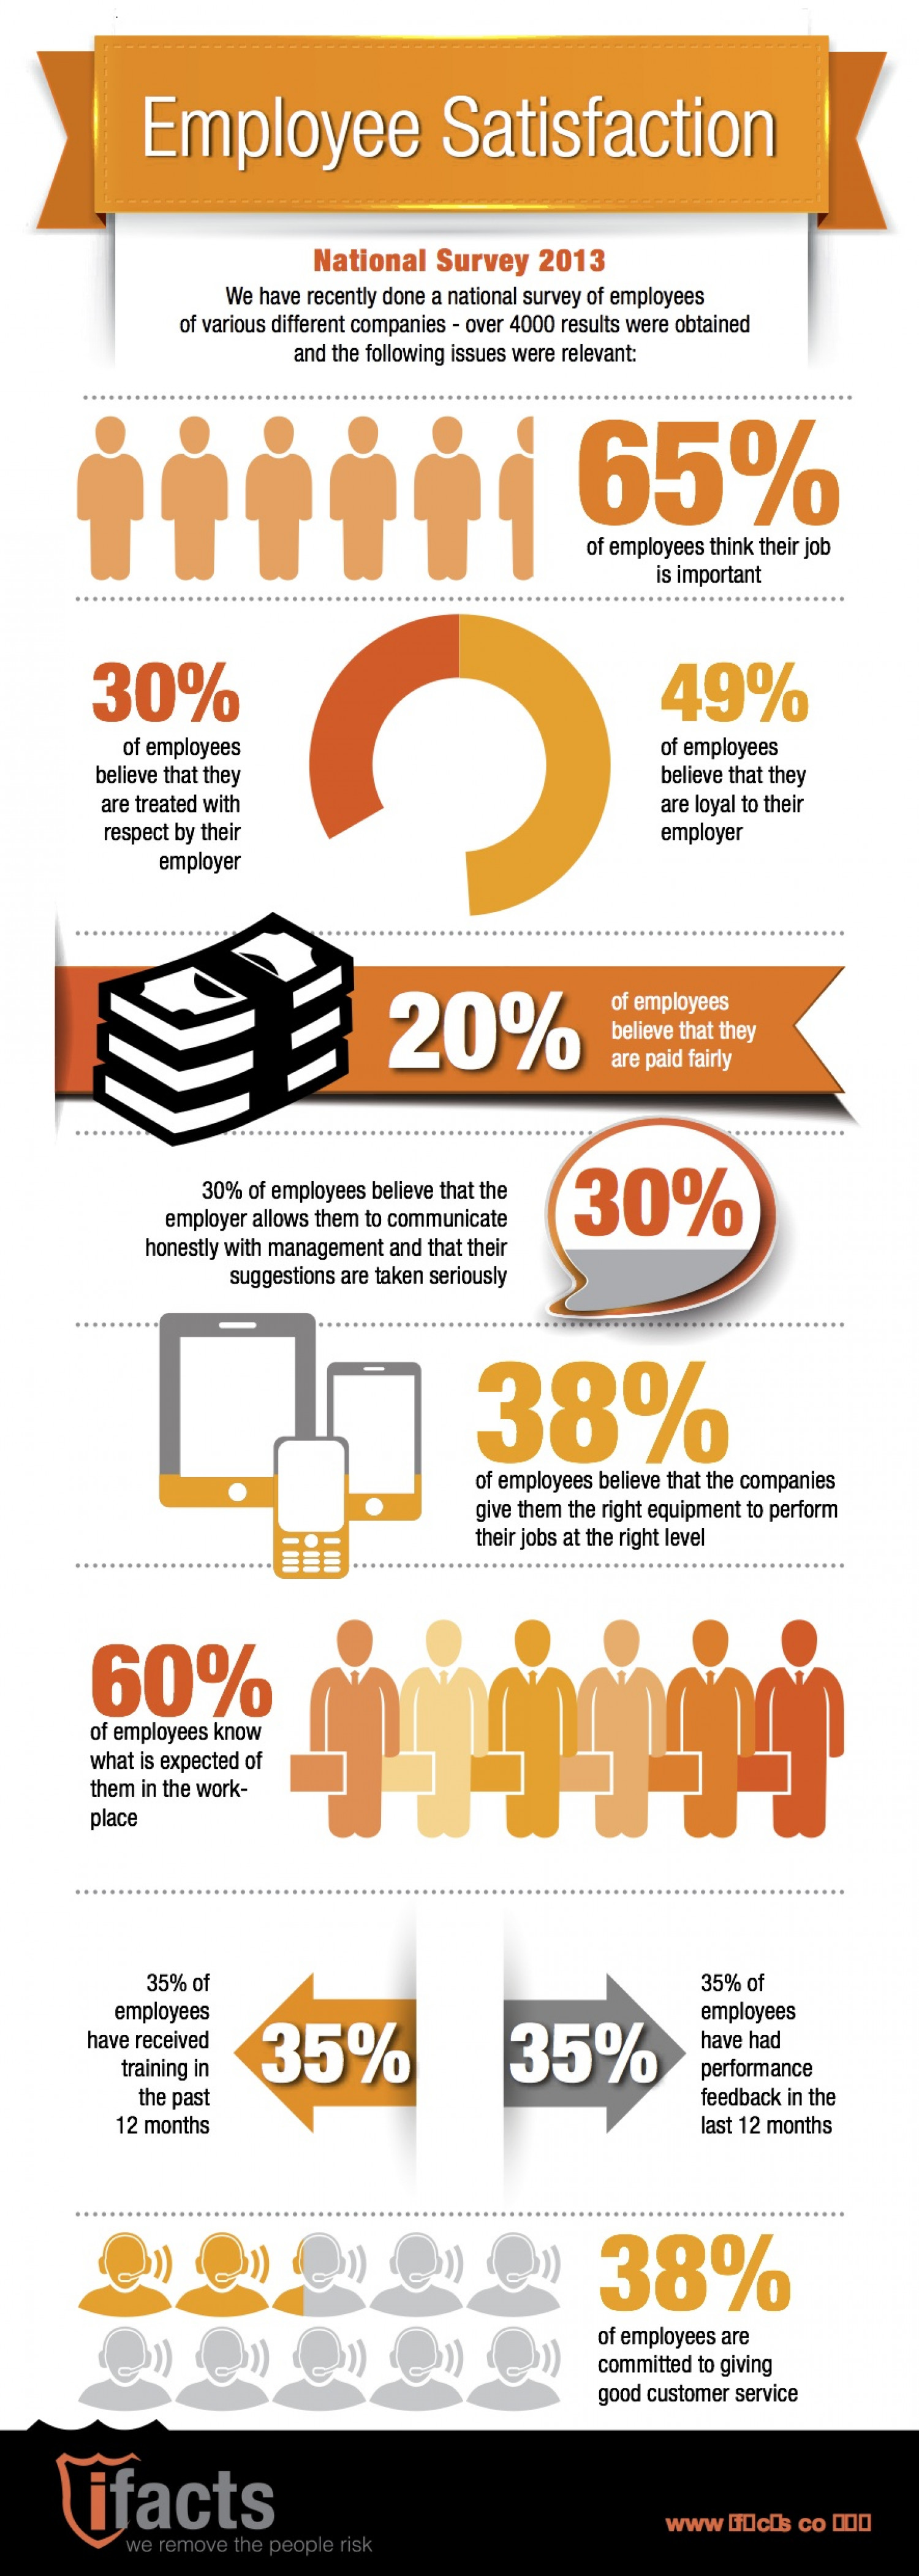 Employee Satisfaction Survey Infographic